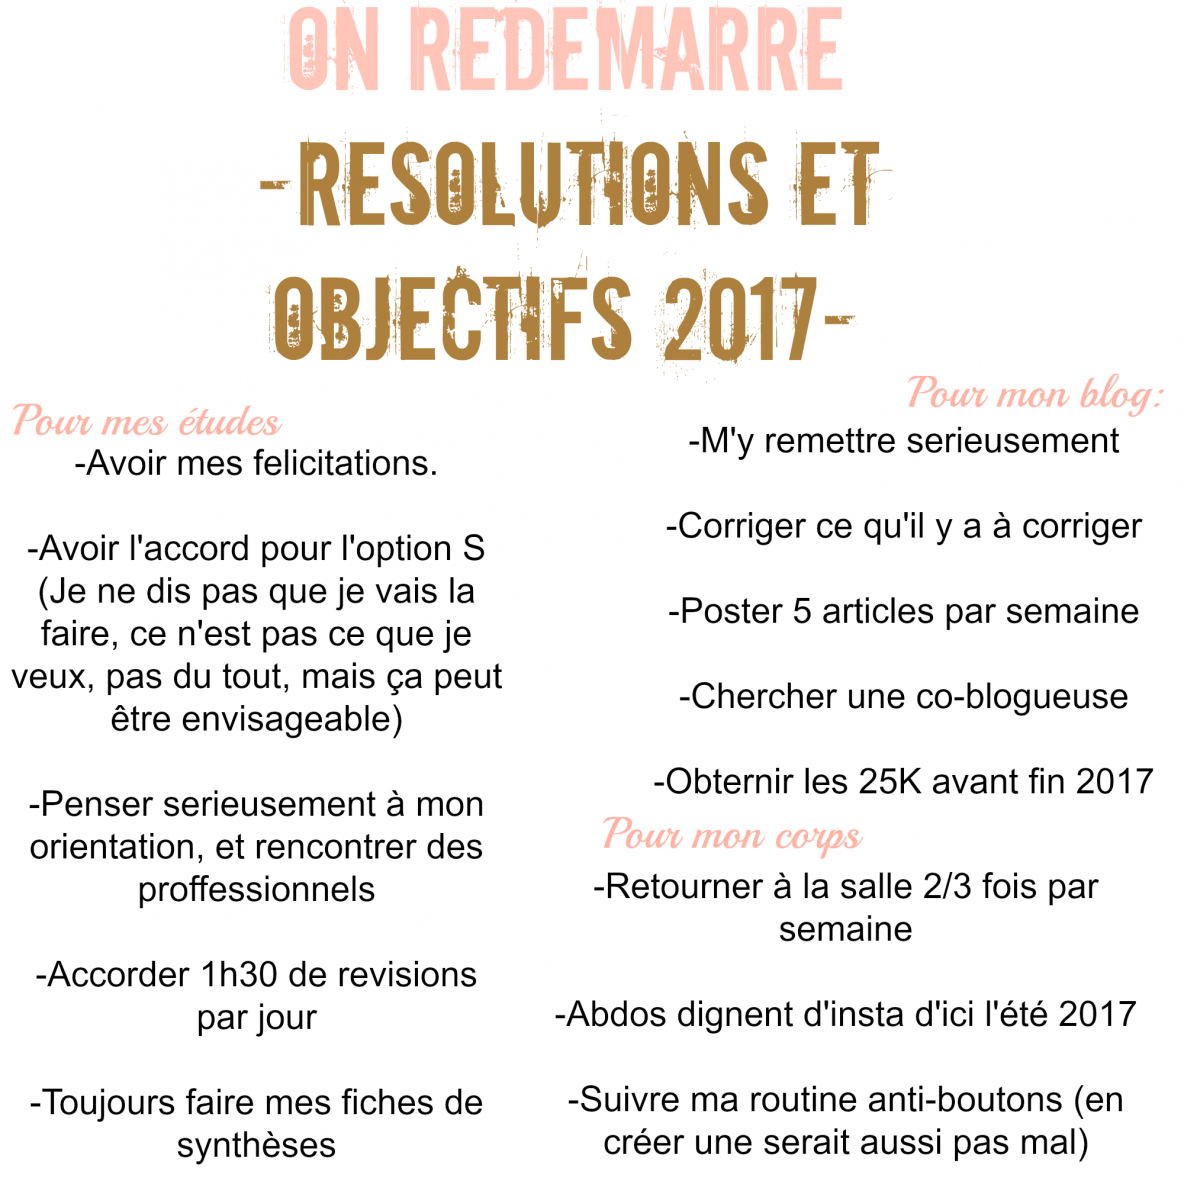 Resolutions et objectifs 2017 – Makeyaaah.com